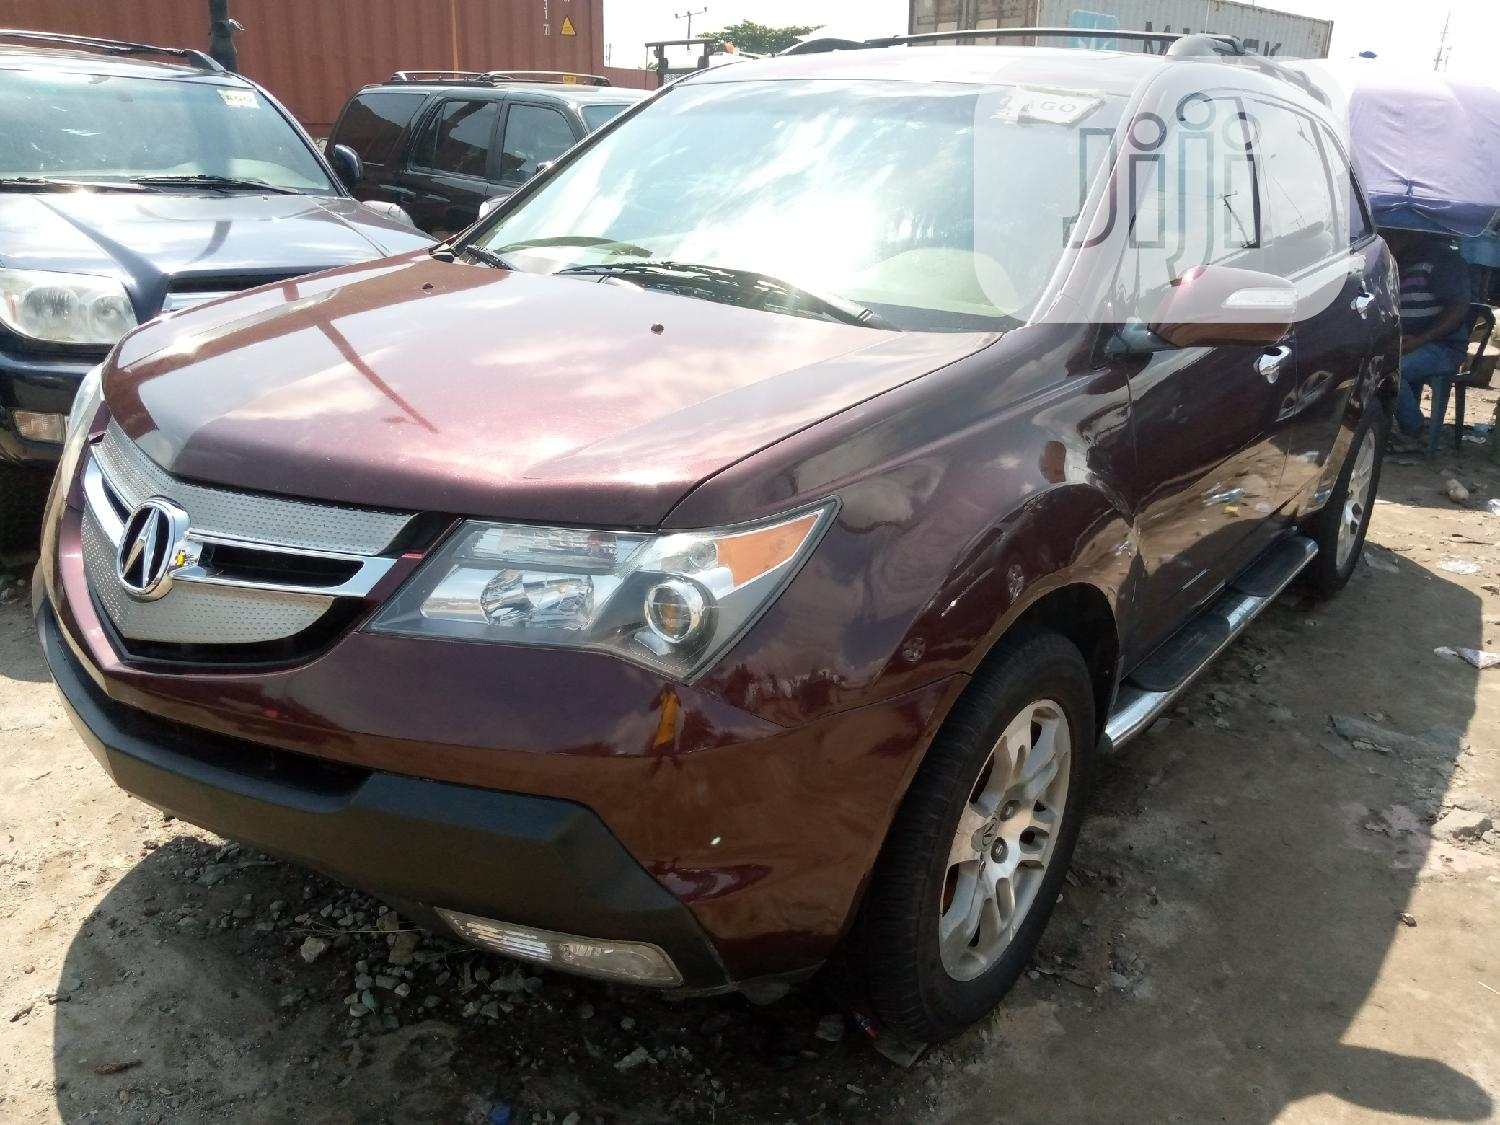 Acura MDX 2008 SUV 4dr AWD (3.7 6cyl 5A) Brown